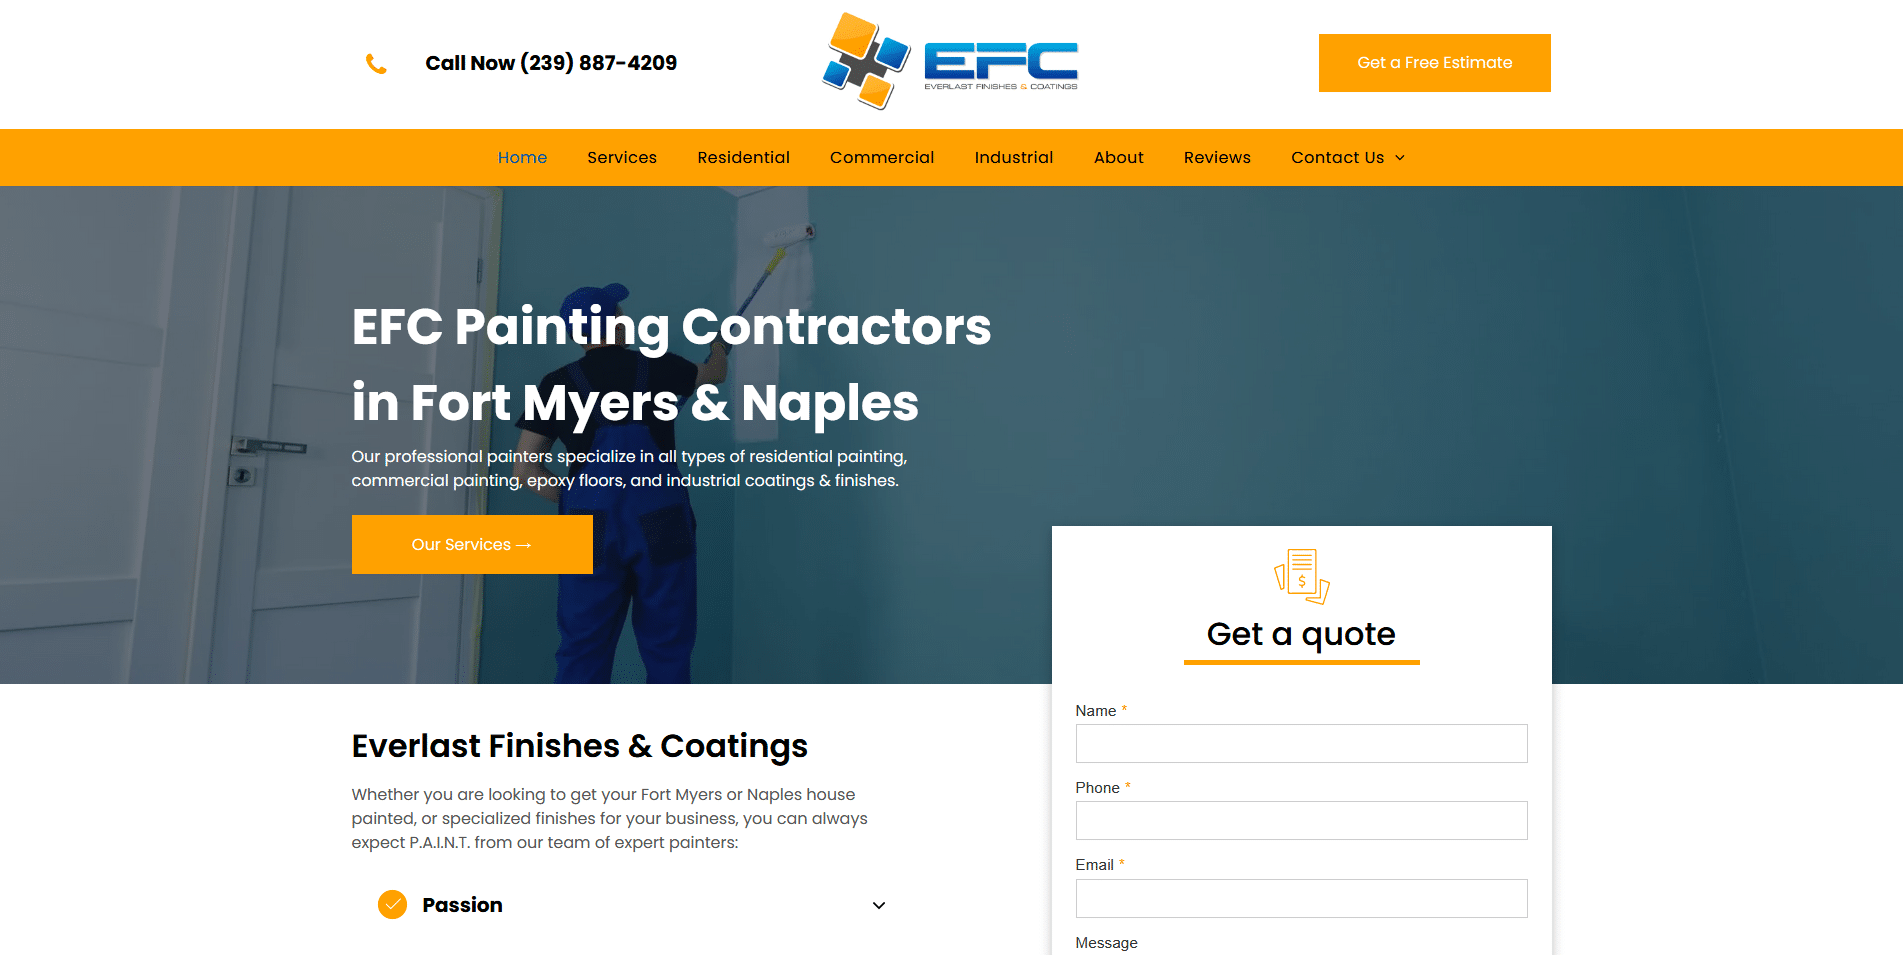 Everlast Finishes & Coatings Painting Contractors in Fort Myers